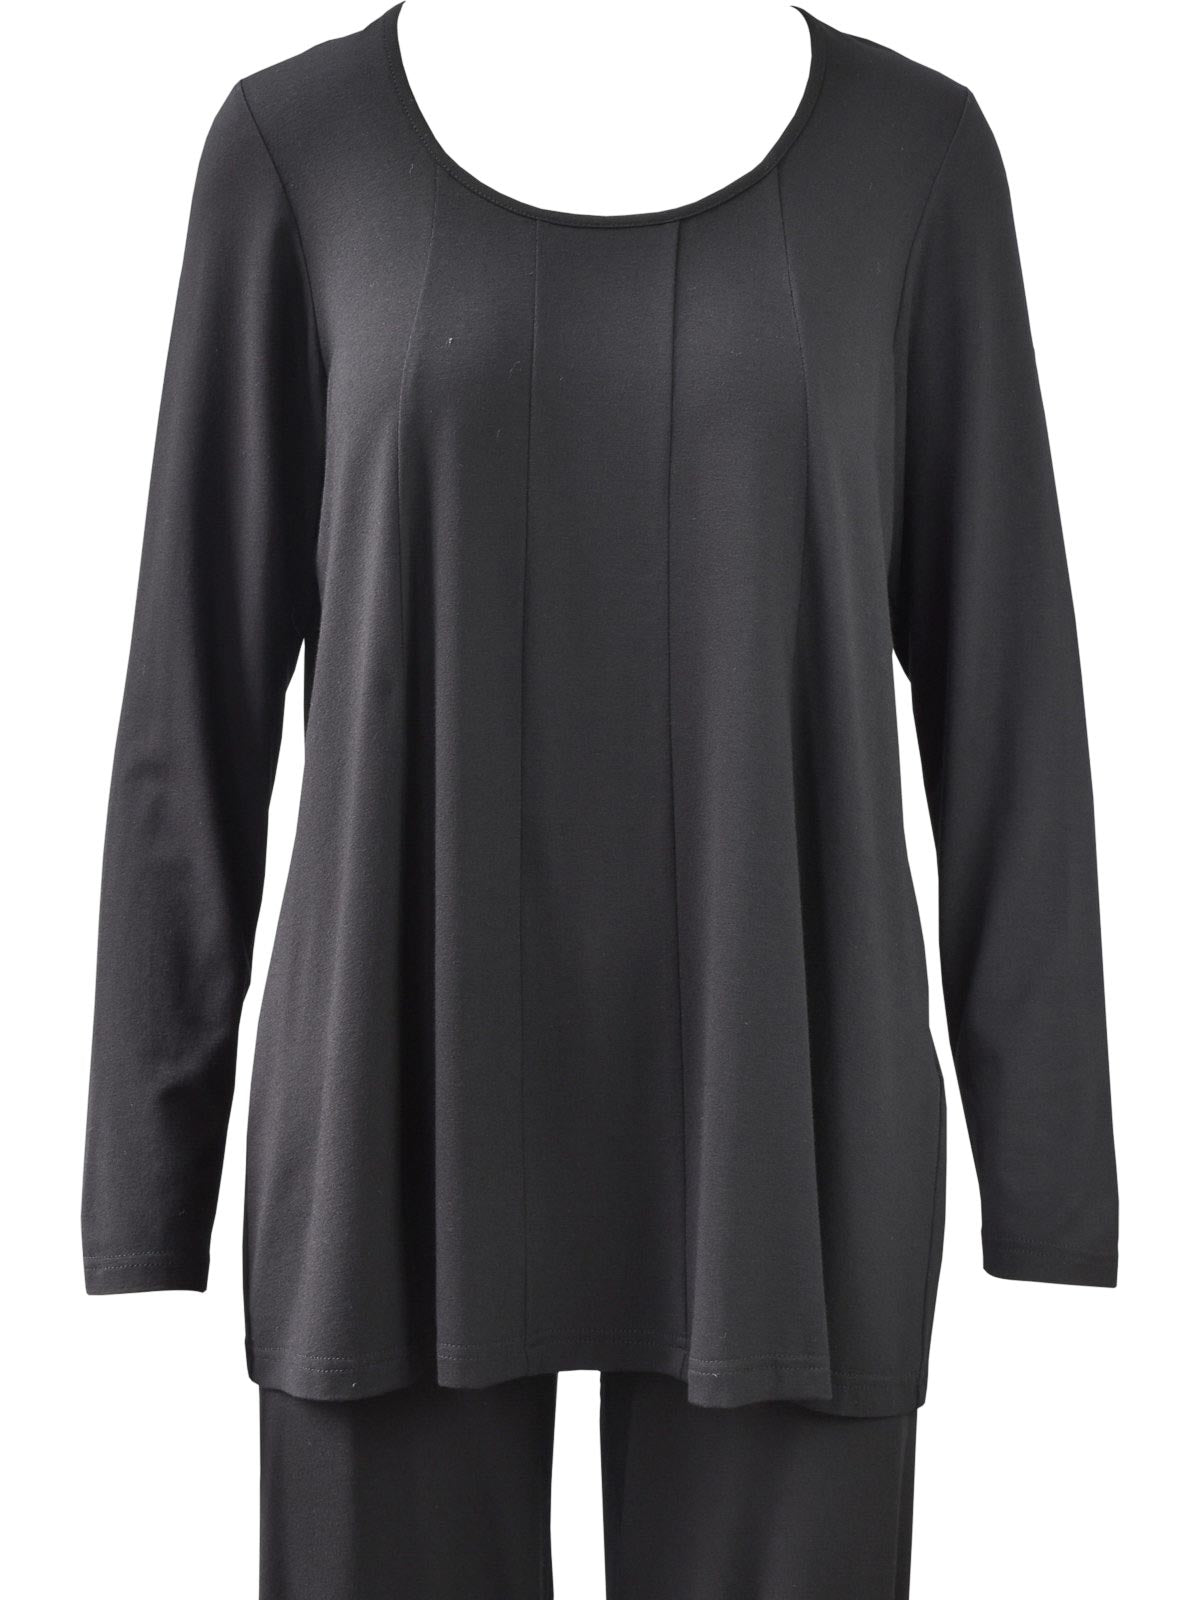 Q'Neel Seam Front Top Long Sleeve, Black